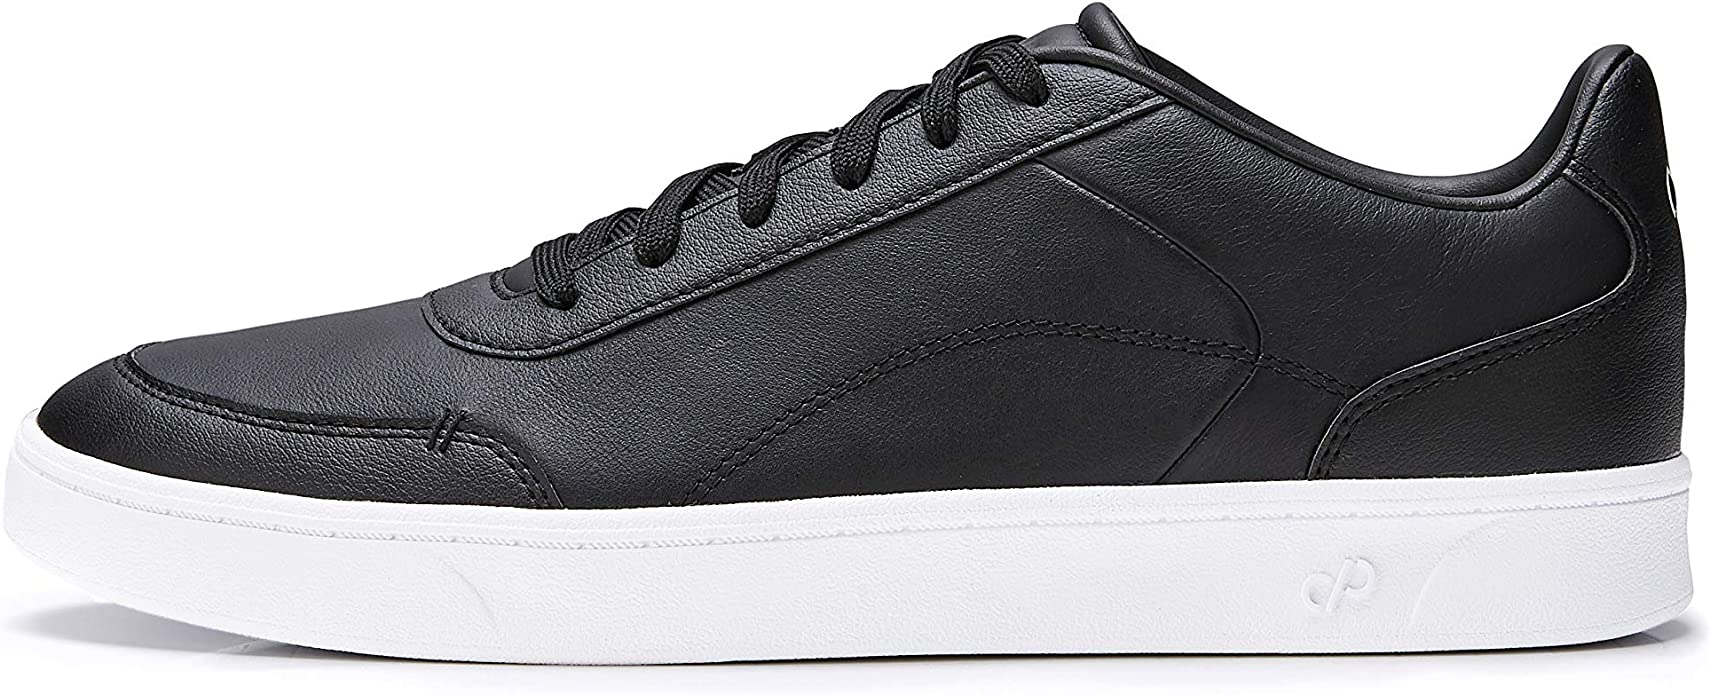 CARE OF by PUMA Men's 372886 Low-Top Sneakers